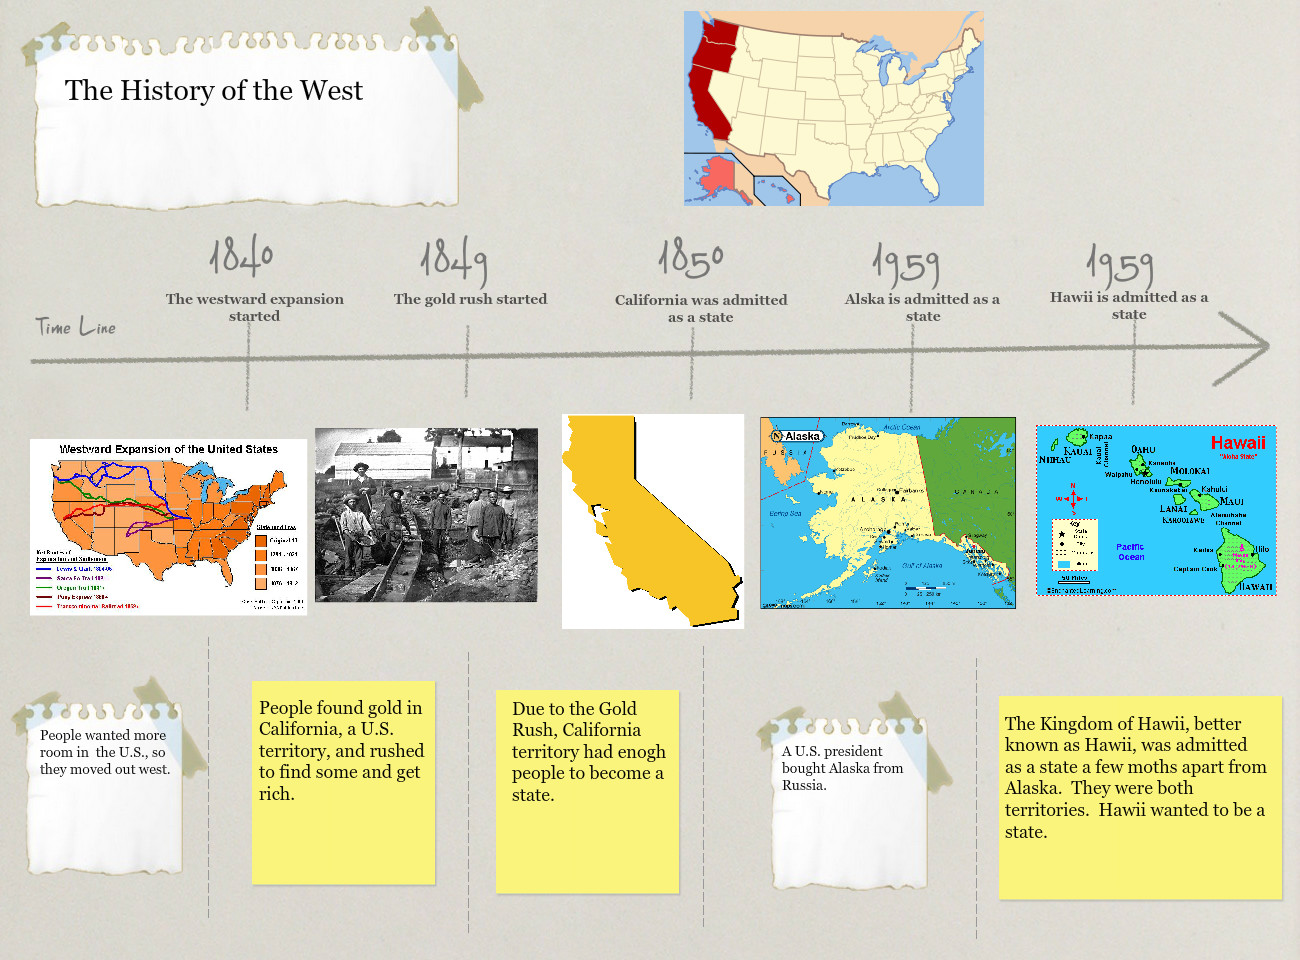 The History of the West